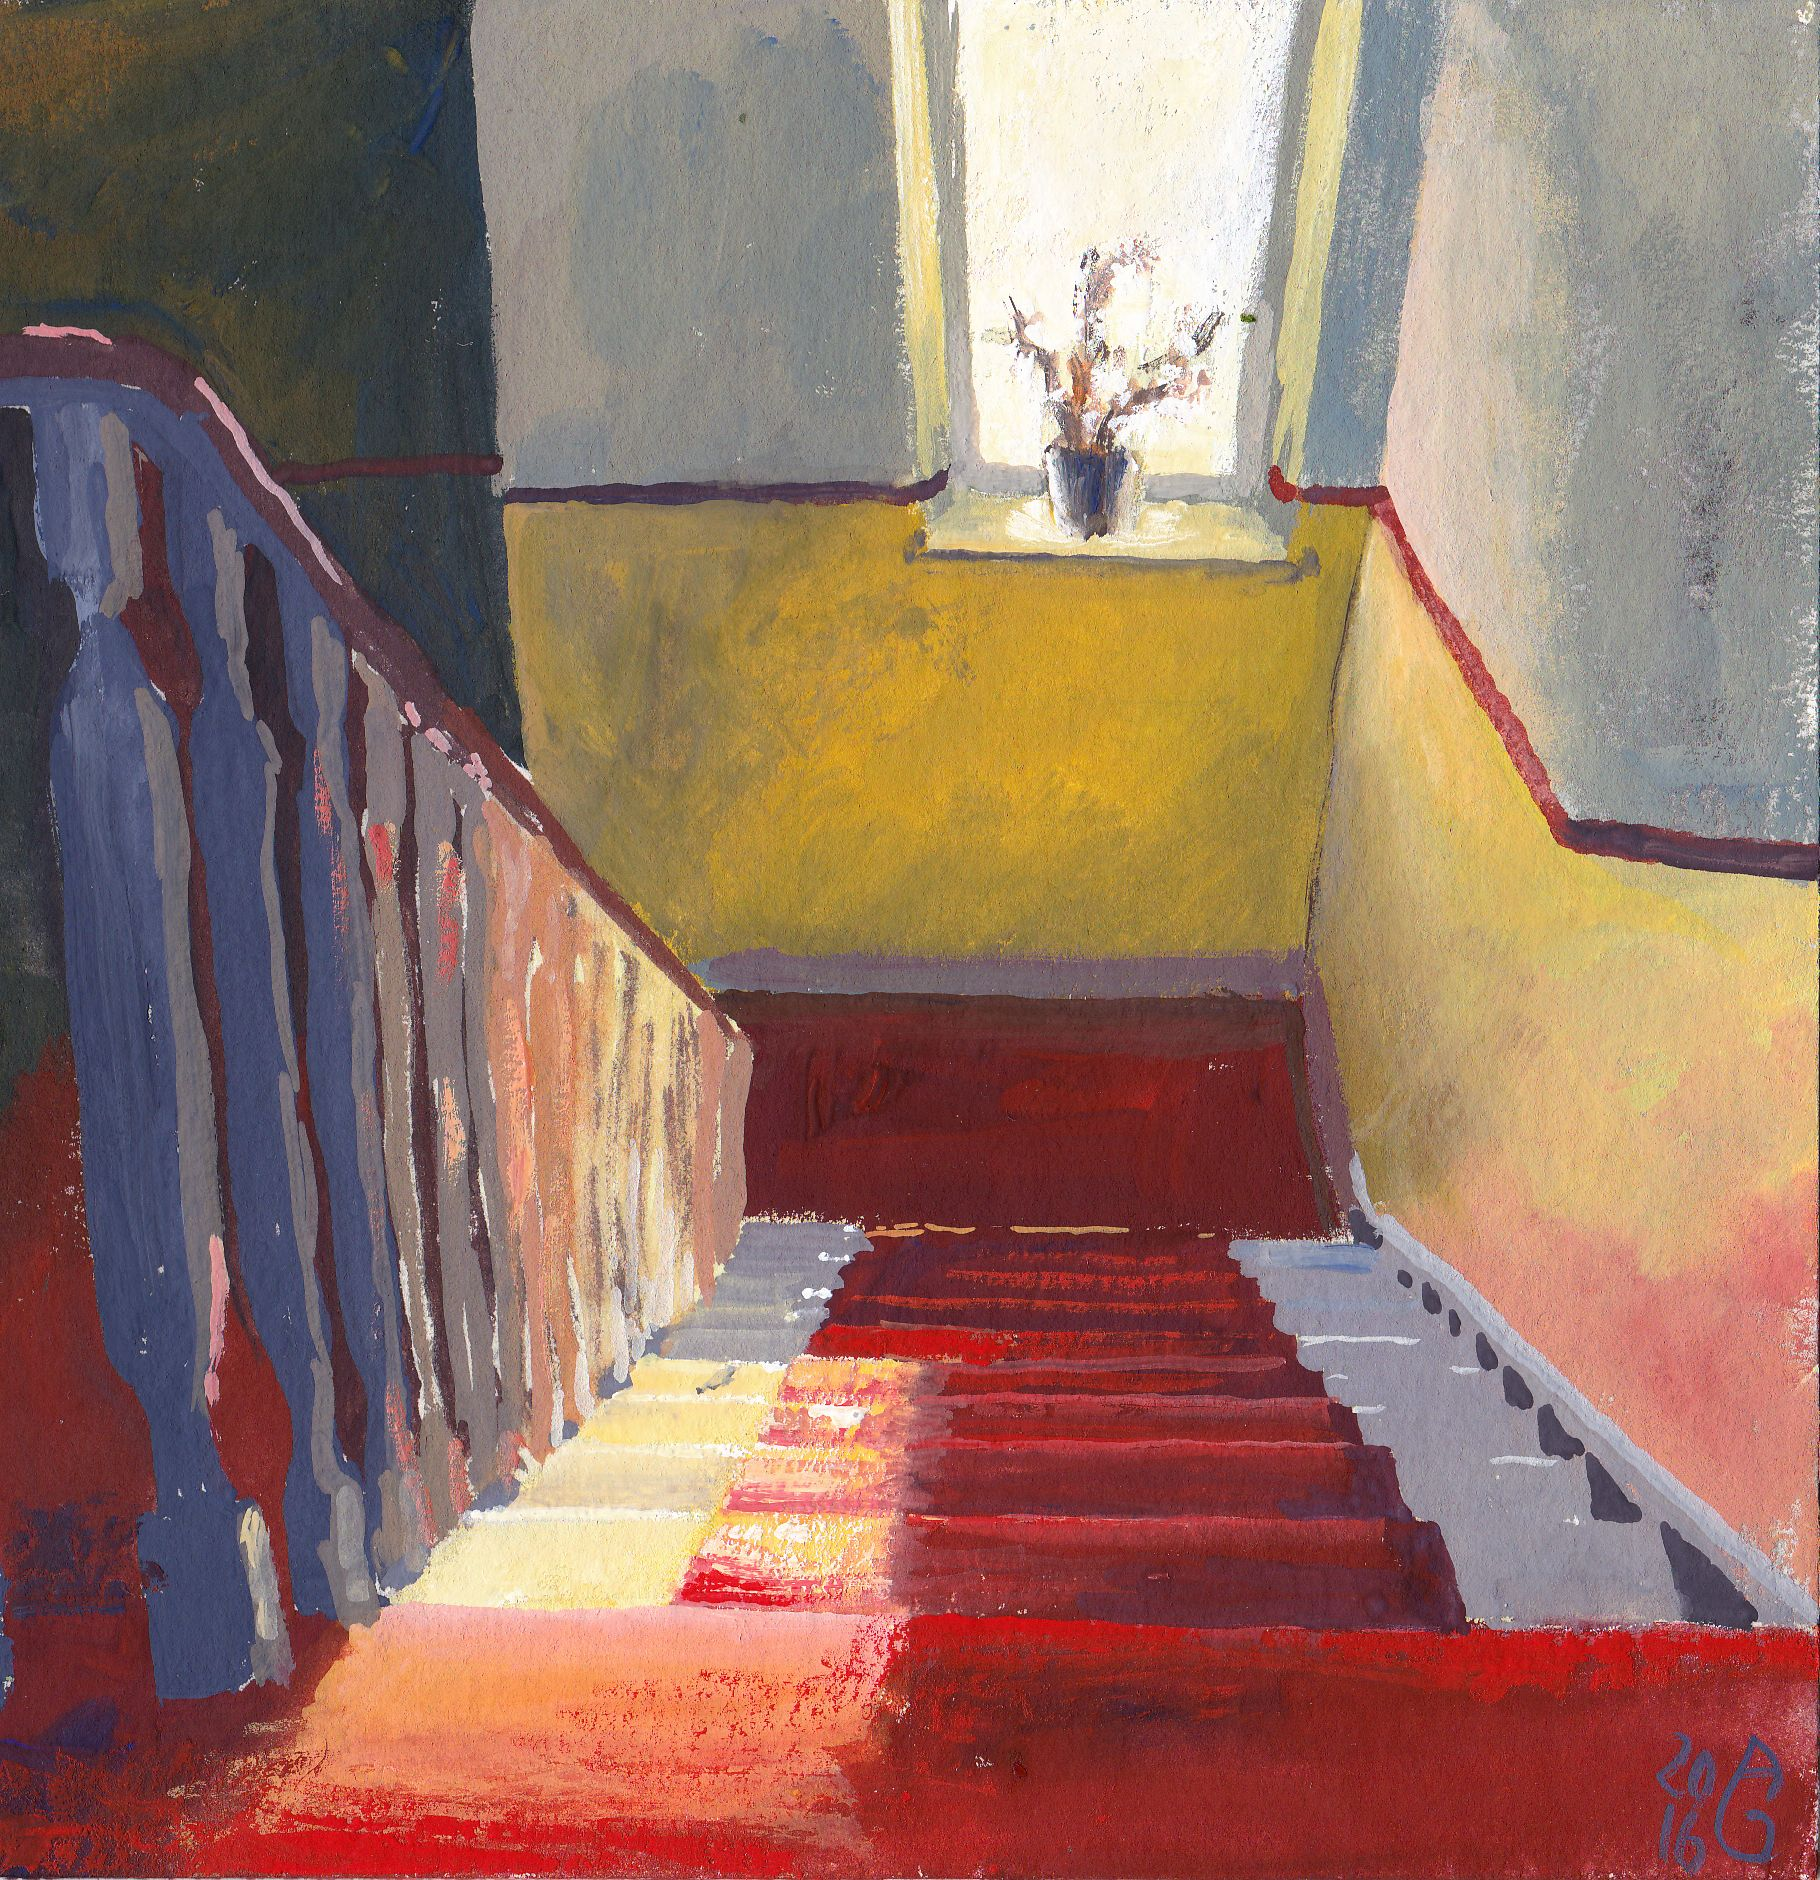 Down the stairs | Treppe runter